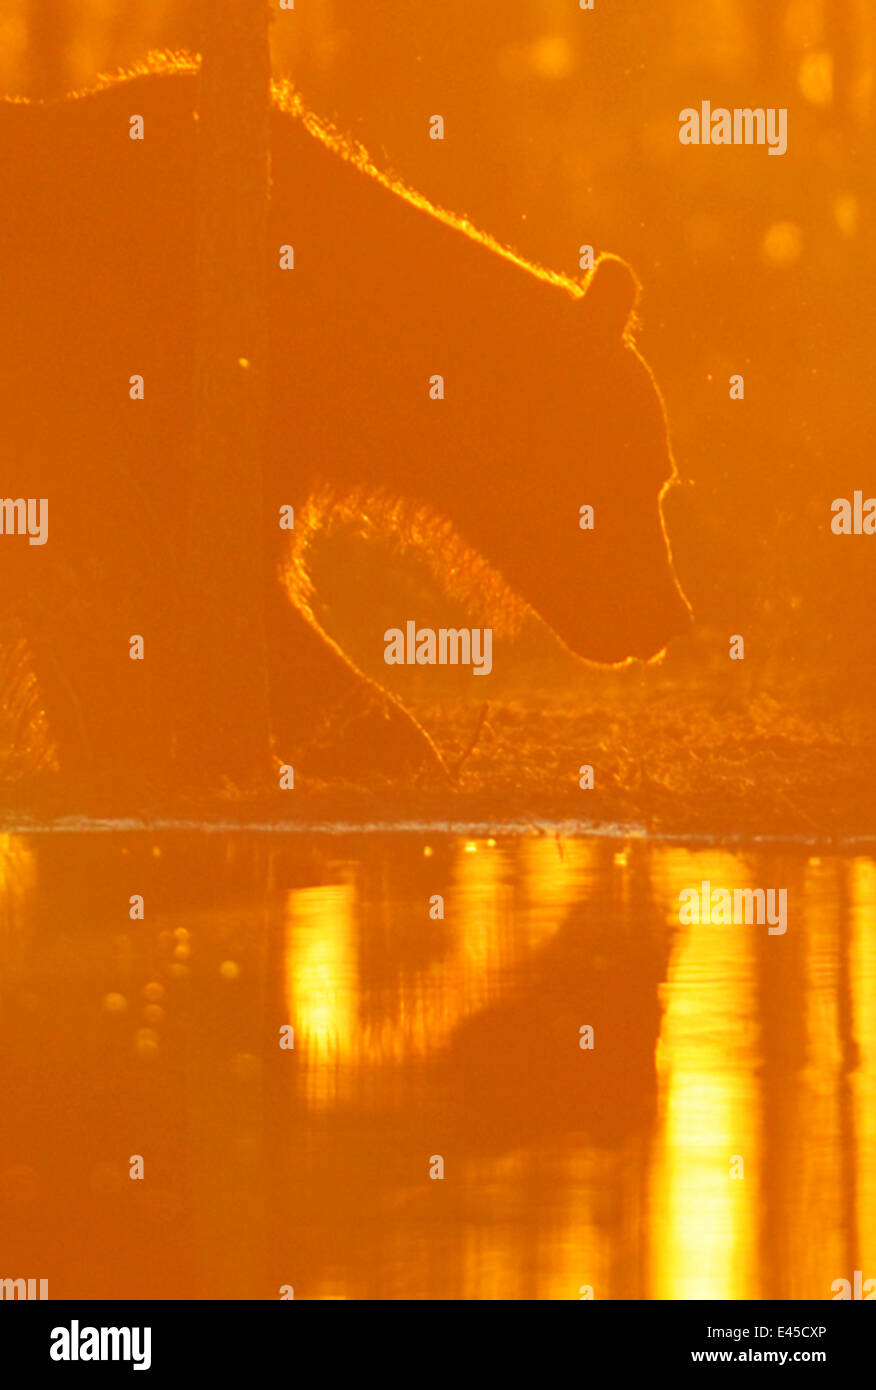 Eurasian brown bear (Ursus arctos) at waters edge, sunset, Kuhmo, Finland, July 2008 - Stock Image